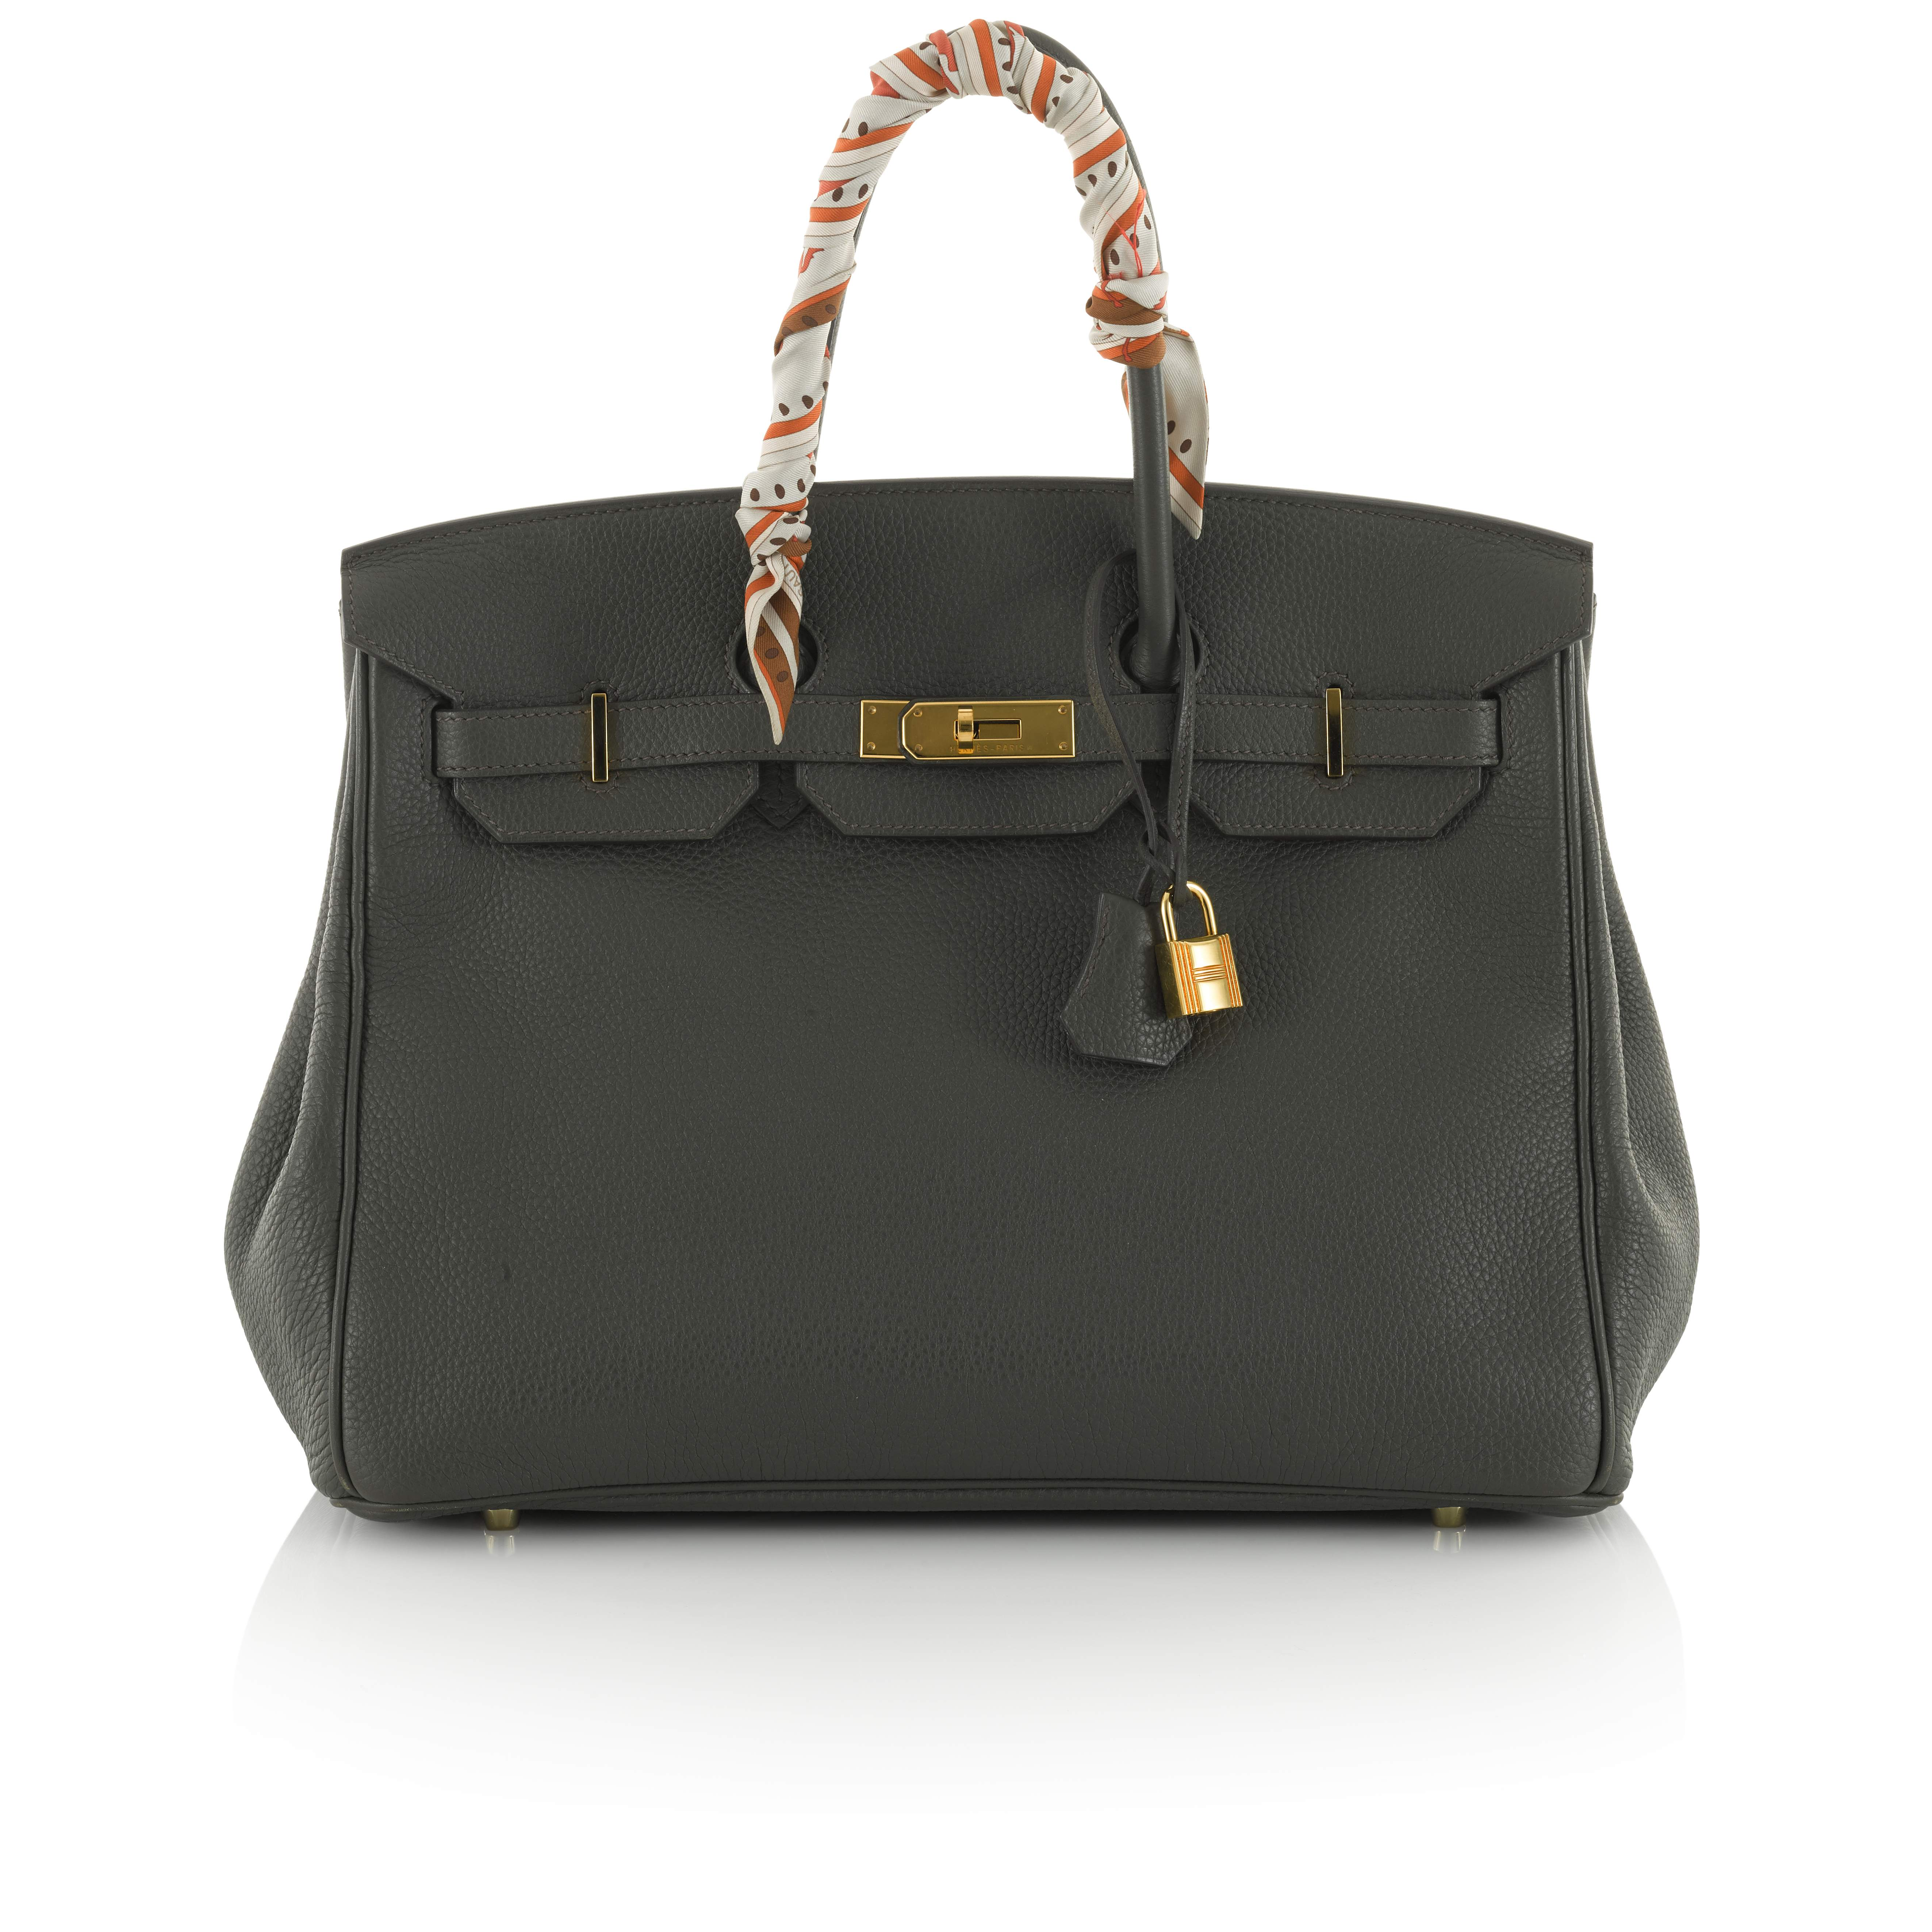 View full screen - View 1 of Lot 34. Vert Cypress Birkin 35cm in Togo Leather with Gold Hardware, 2012.